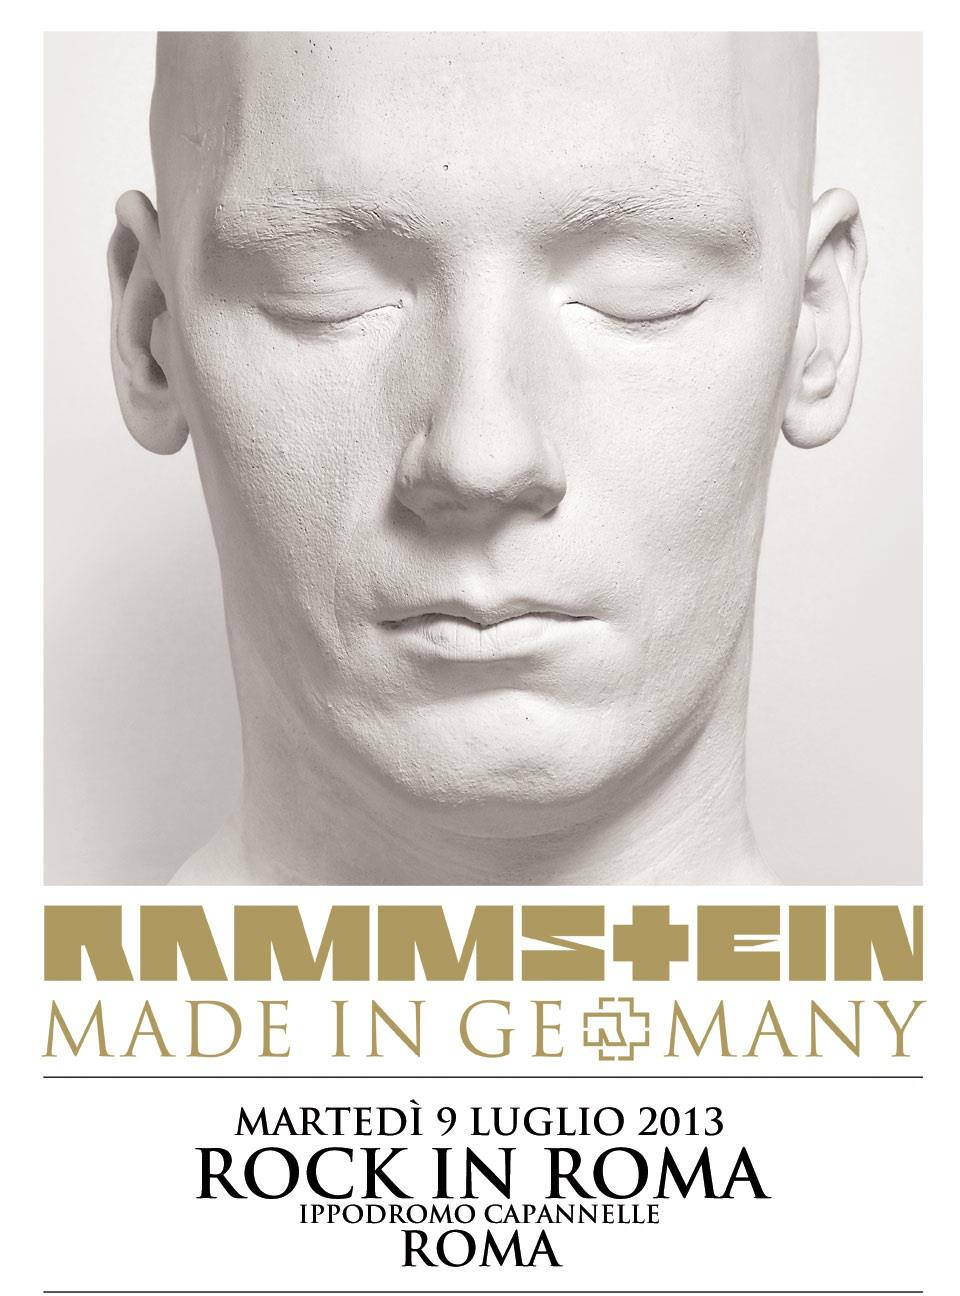 Rammstein: Made In Germany Tour 2013